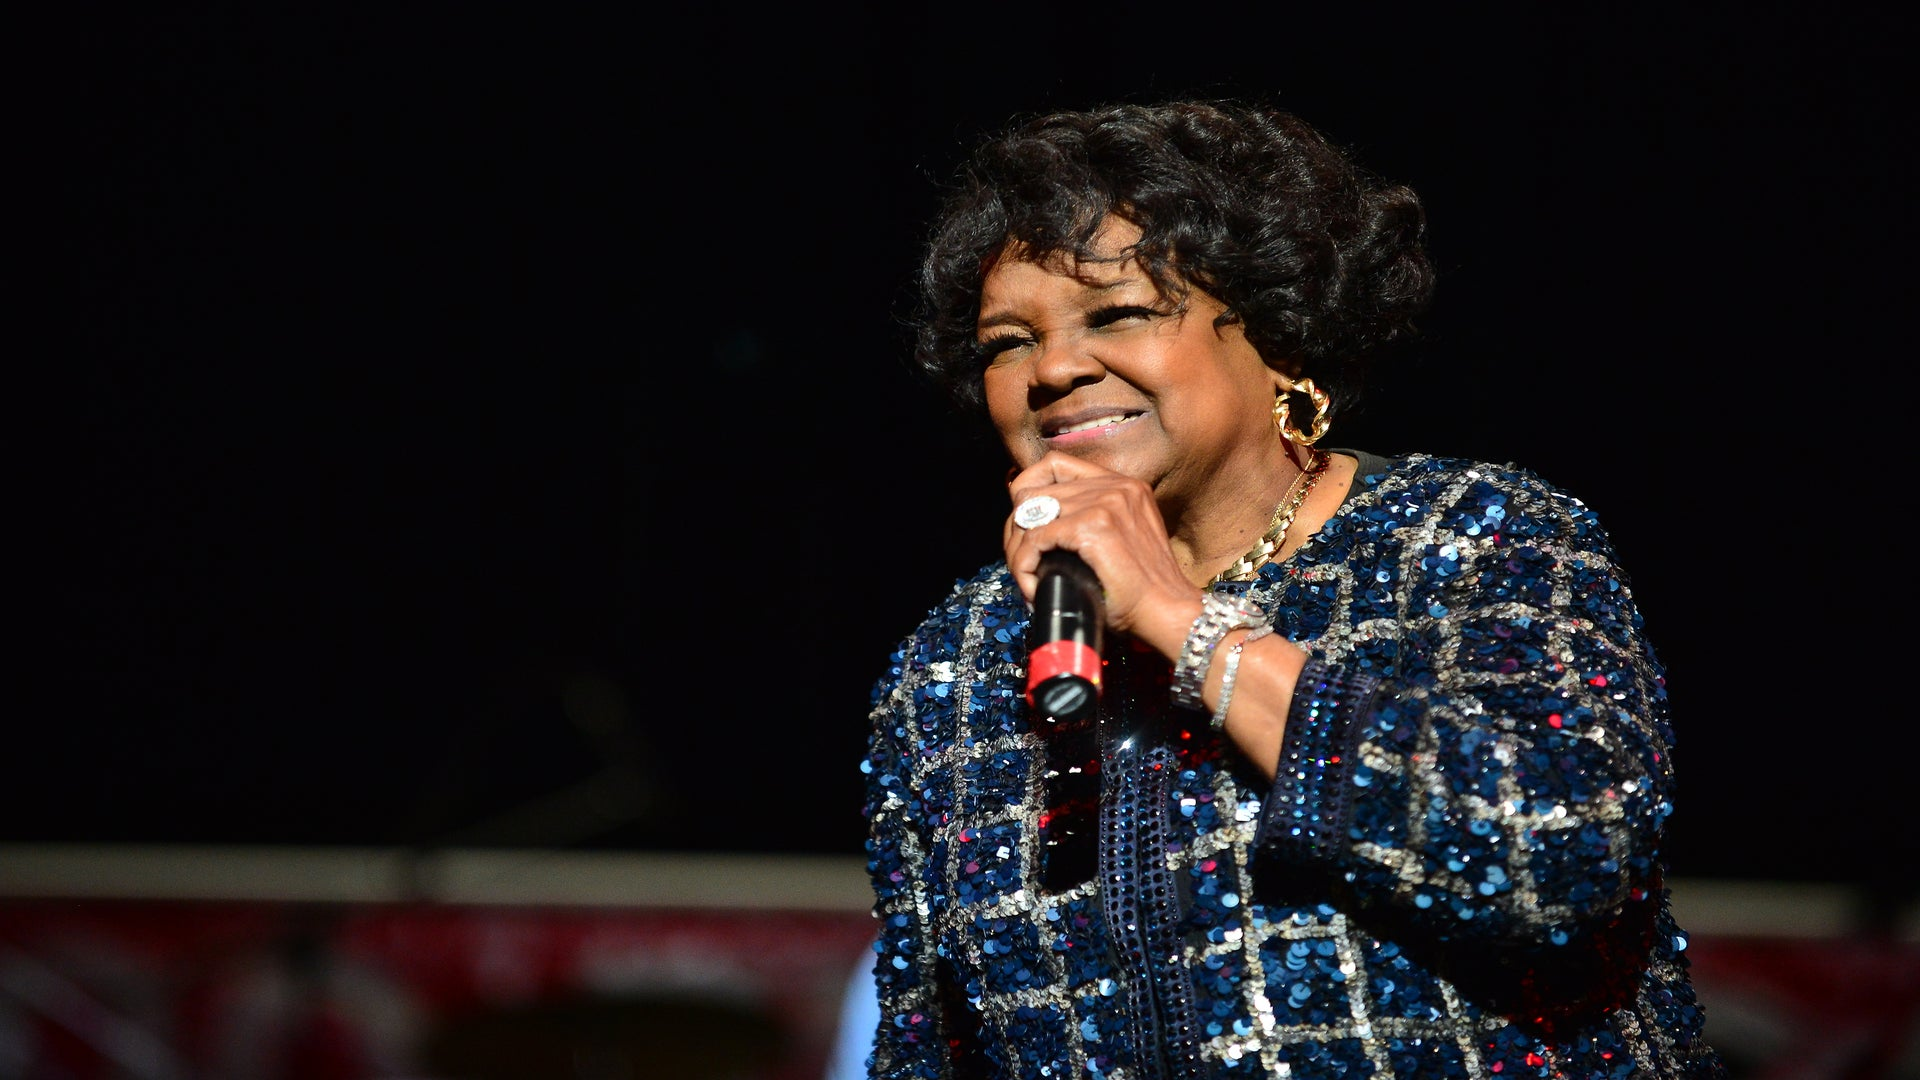 Shirley Caesar On Kim Burrell's Comments: 'Should've Said Something 4 Years Ago When Our President Made It Alright'